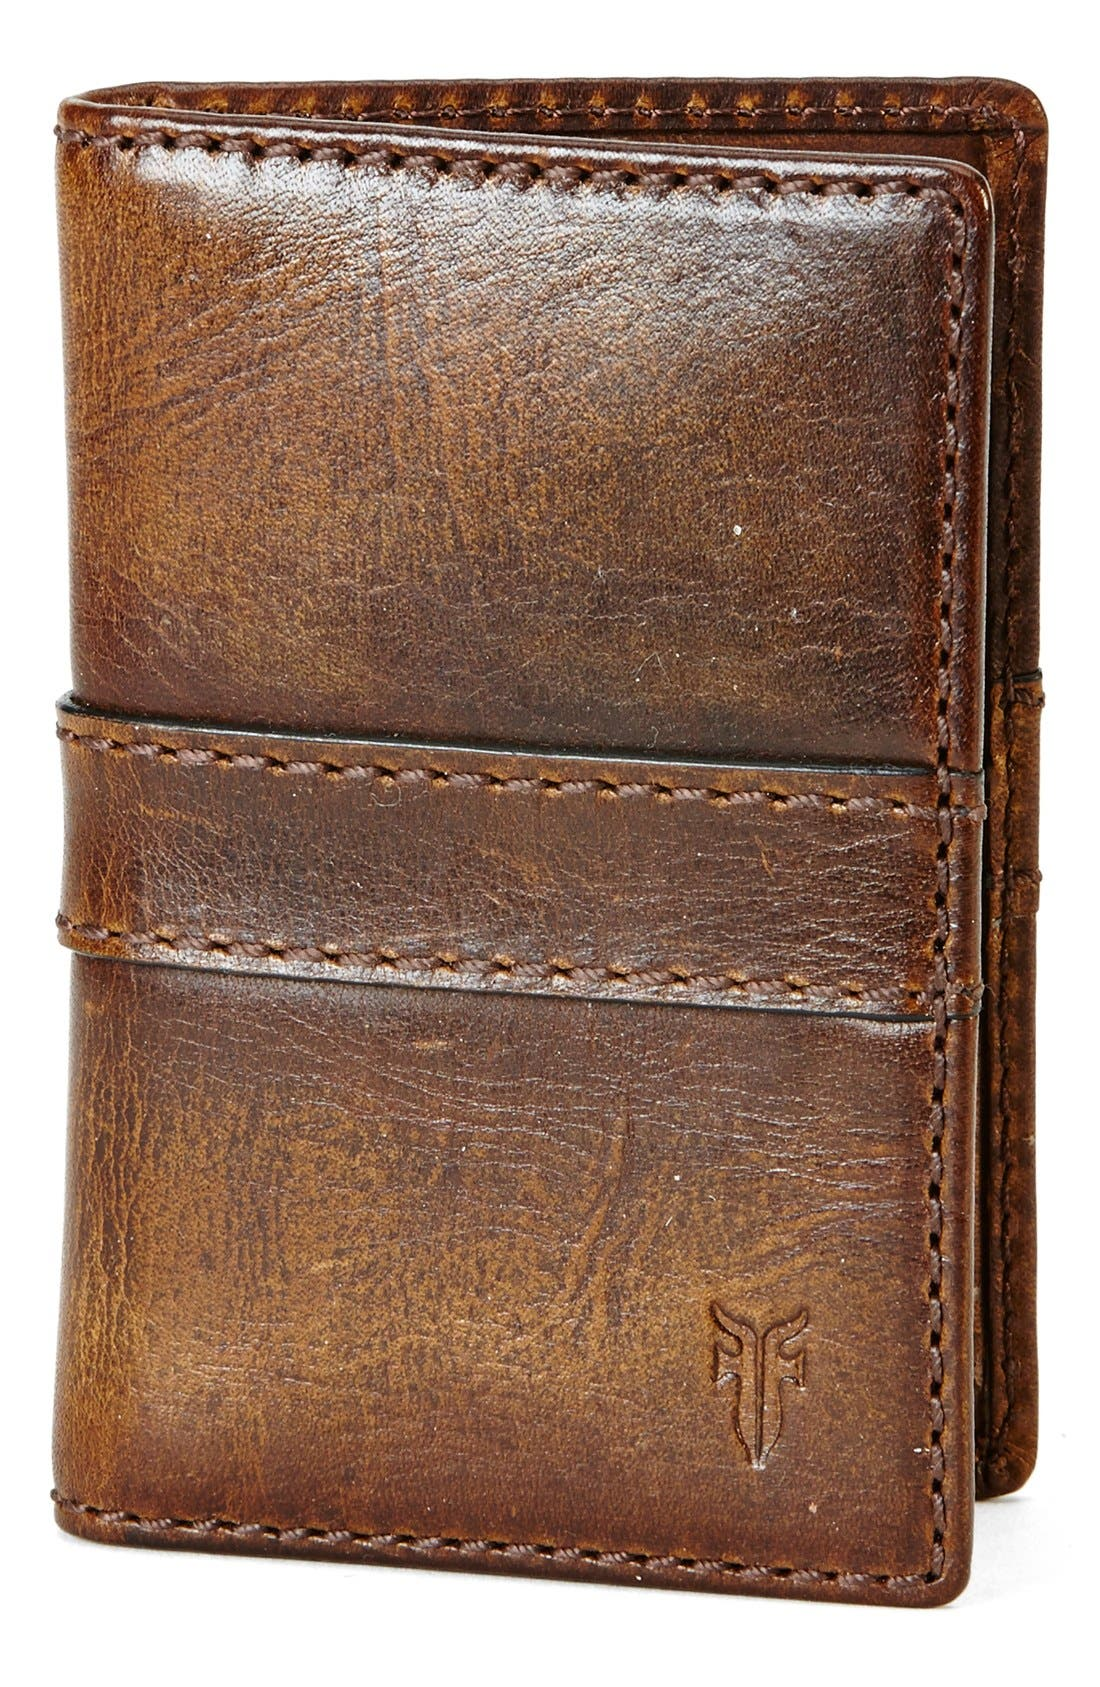 'Oliver' Leather Wallet,                             Main thumbnail 1, color,                             DARK BROWN